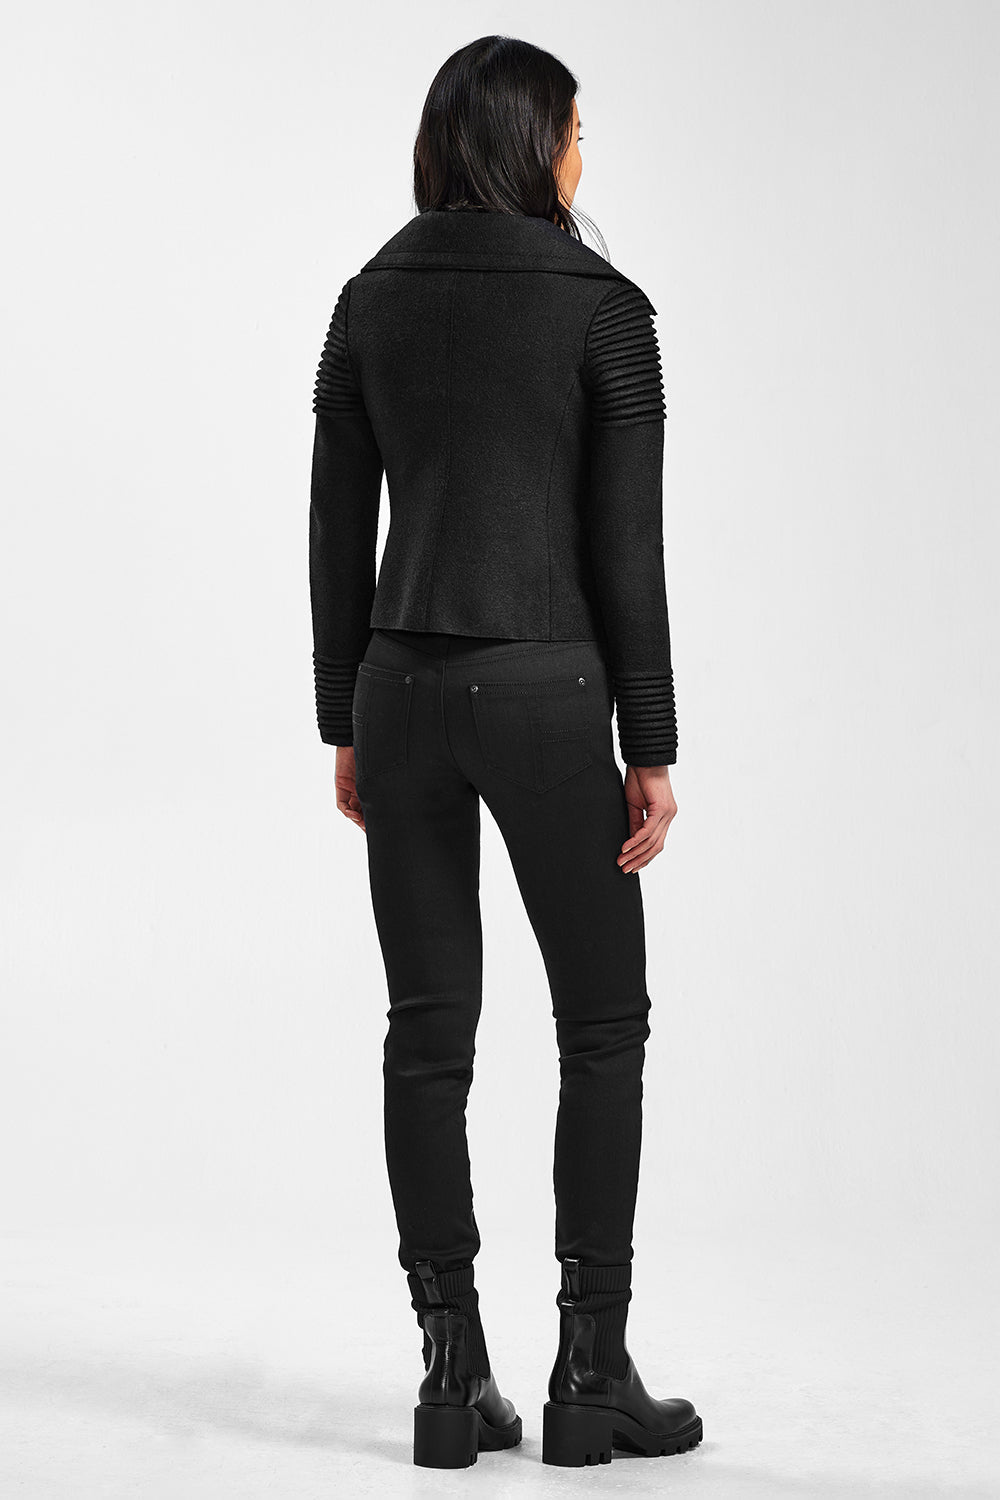 Sentaler Bomber Jacket with Ribbed Shoulders and Cuffs featured in Superfine Alpaca and available in Black. Seen from back.